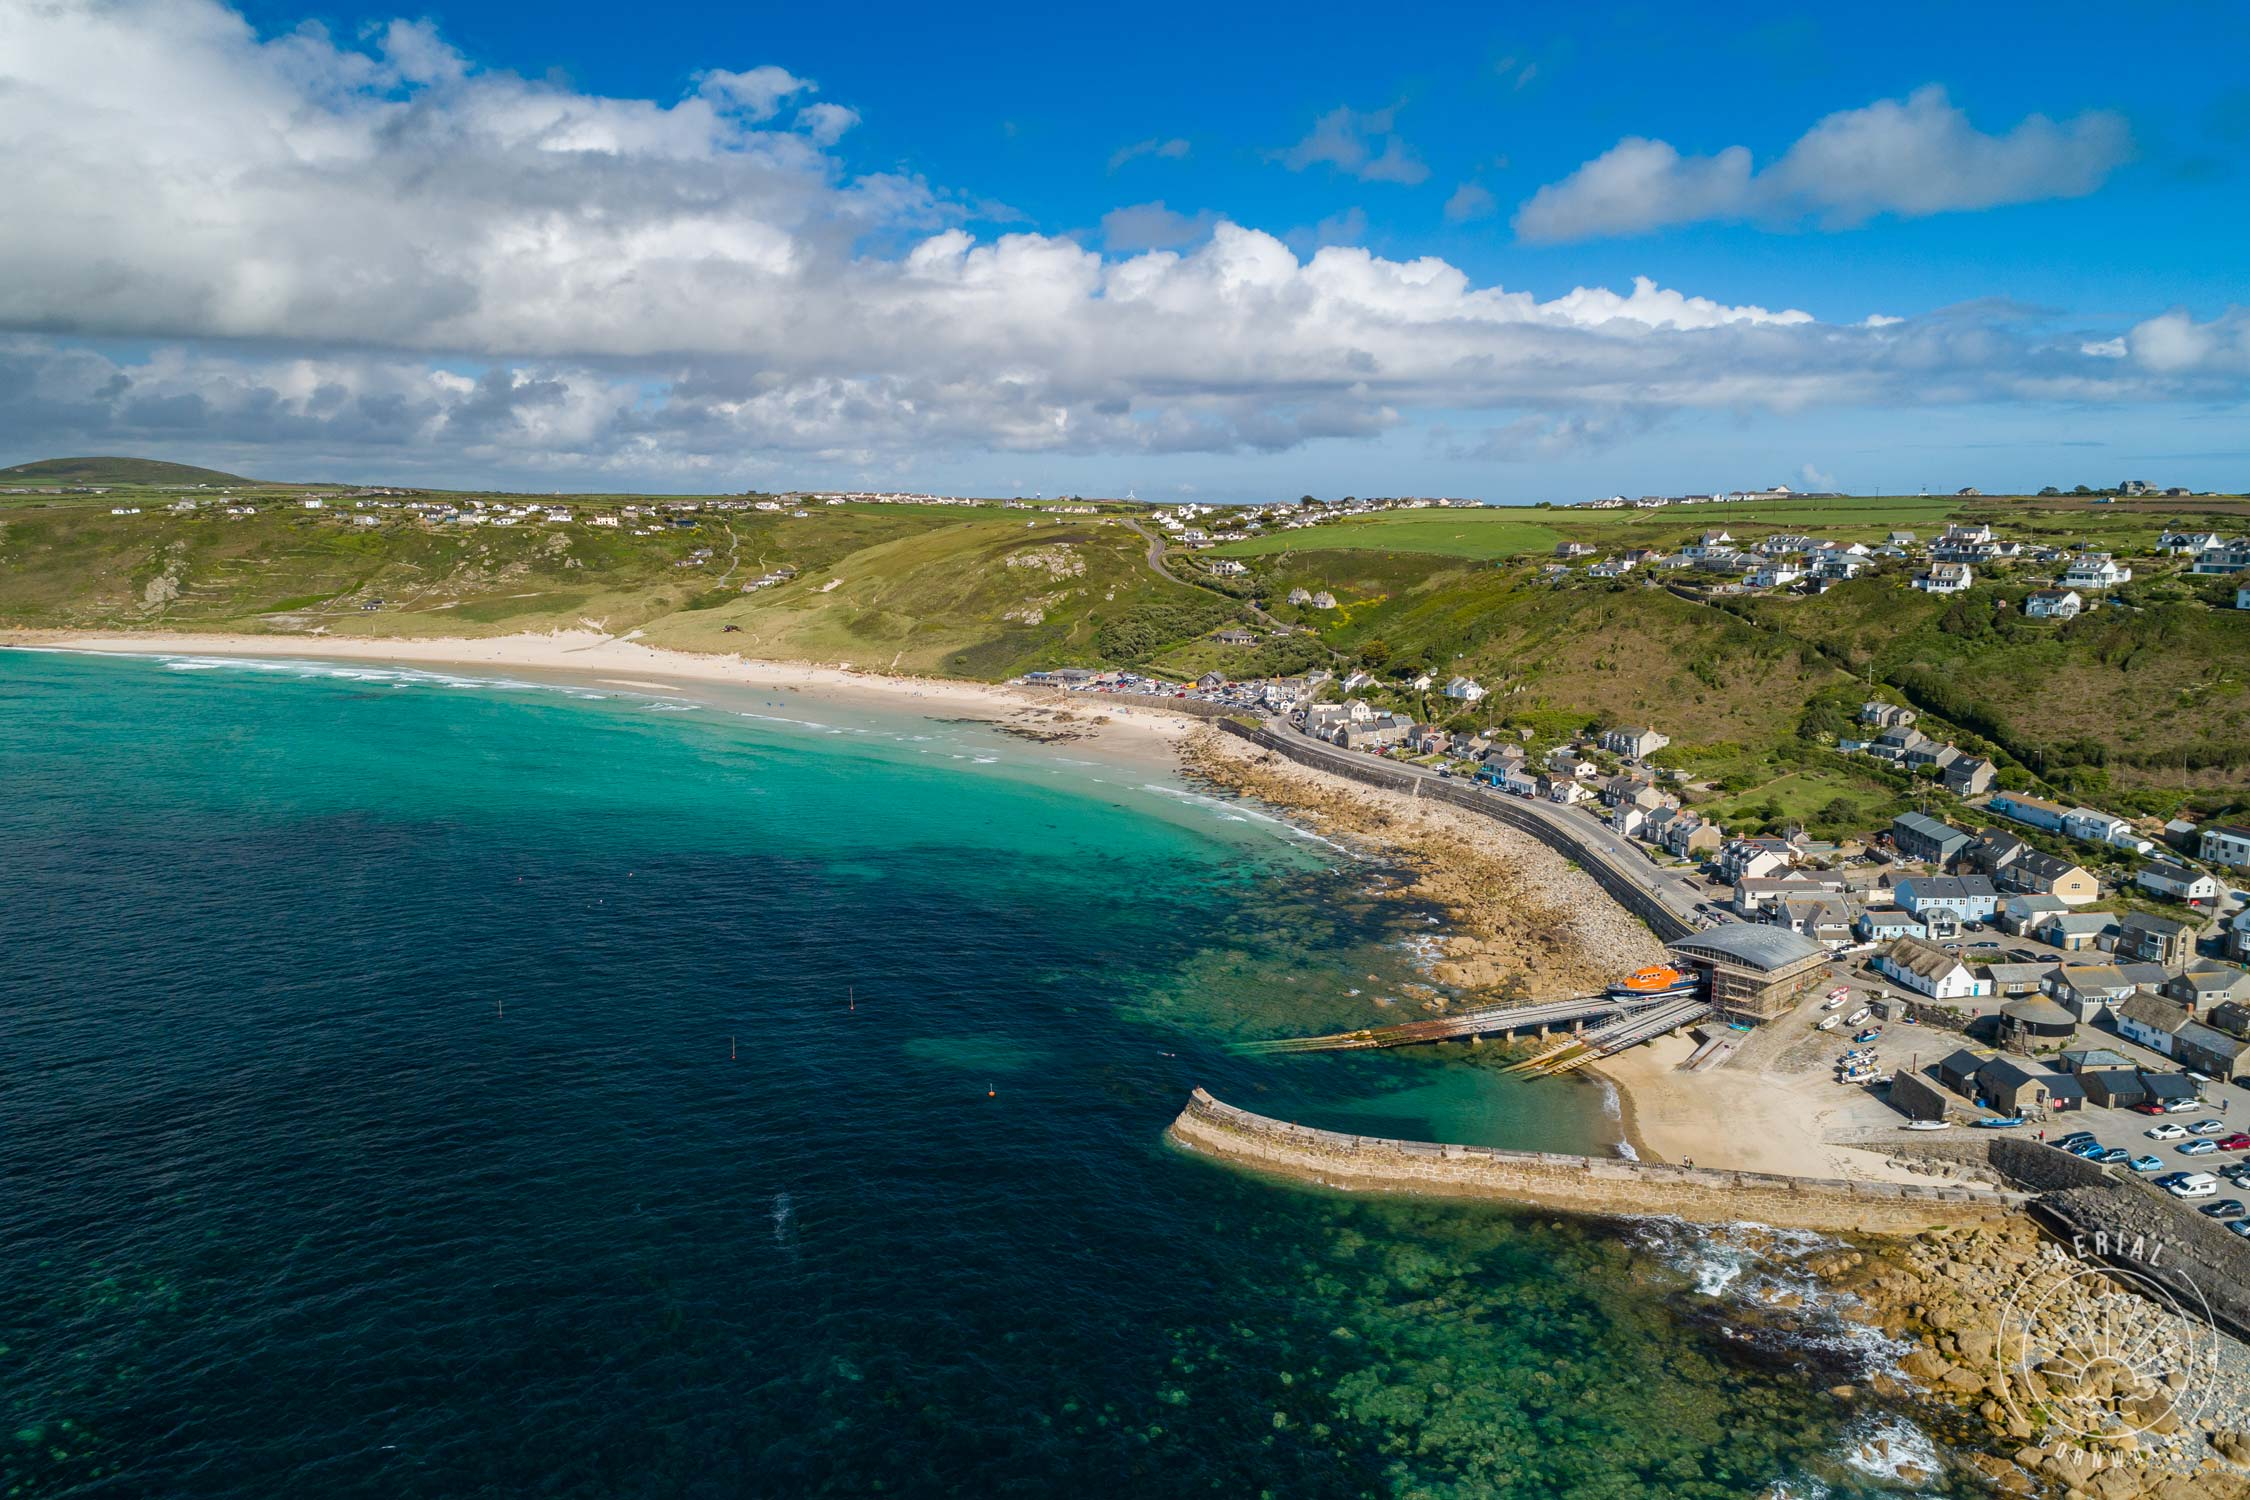 Location: Sennen Cove